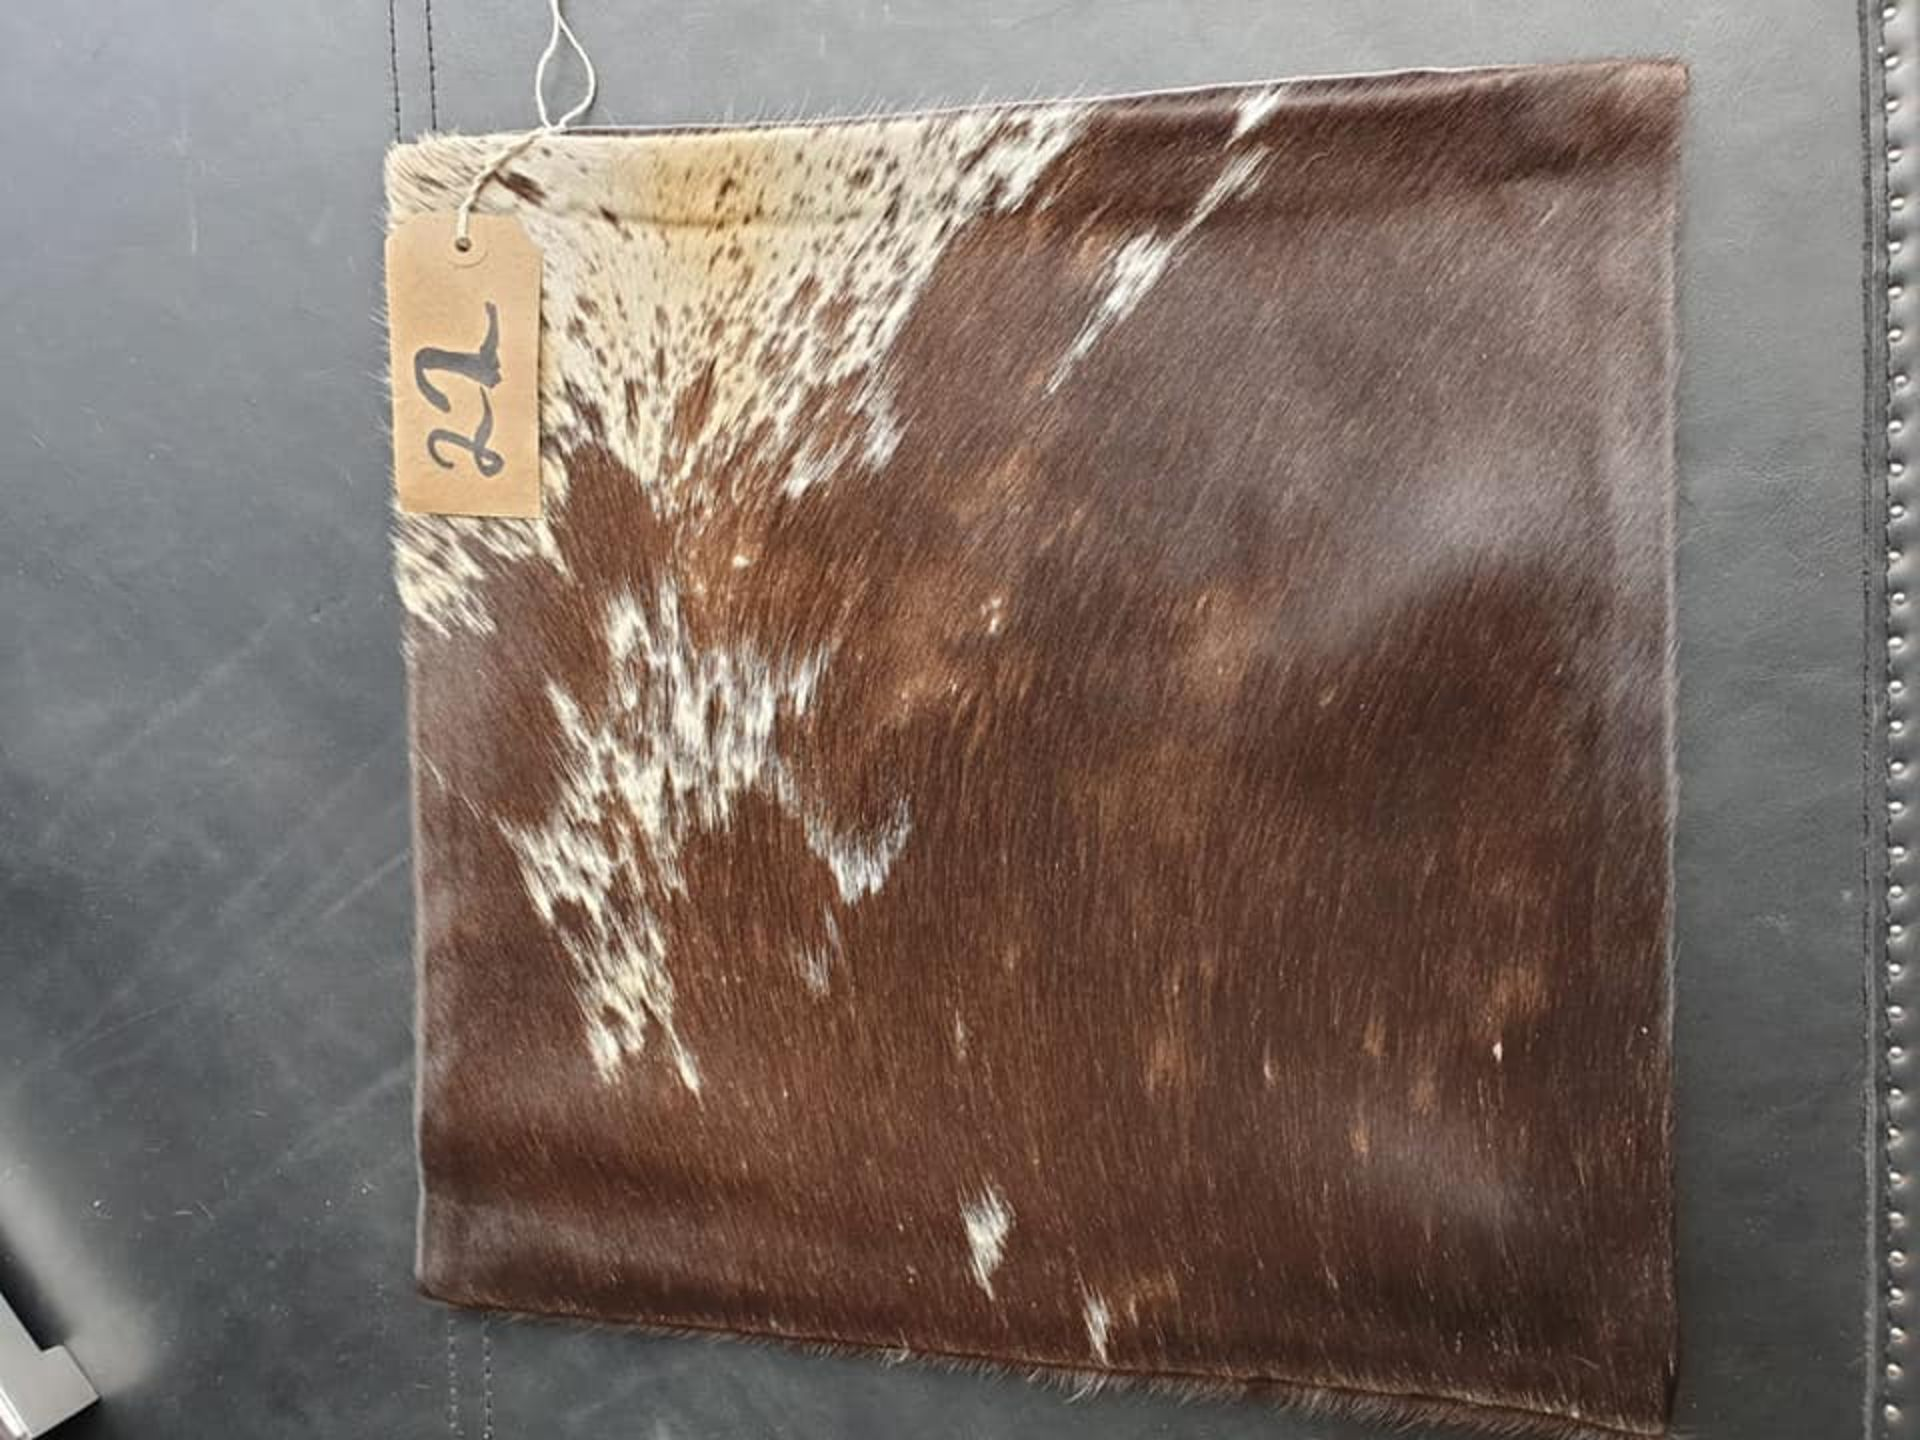 Lot 22 - Cushion Cowhide Leather Cushion Cover 100% Natural Hide Handmade Cover (Style PR435 x1) 35cm RRP £